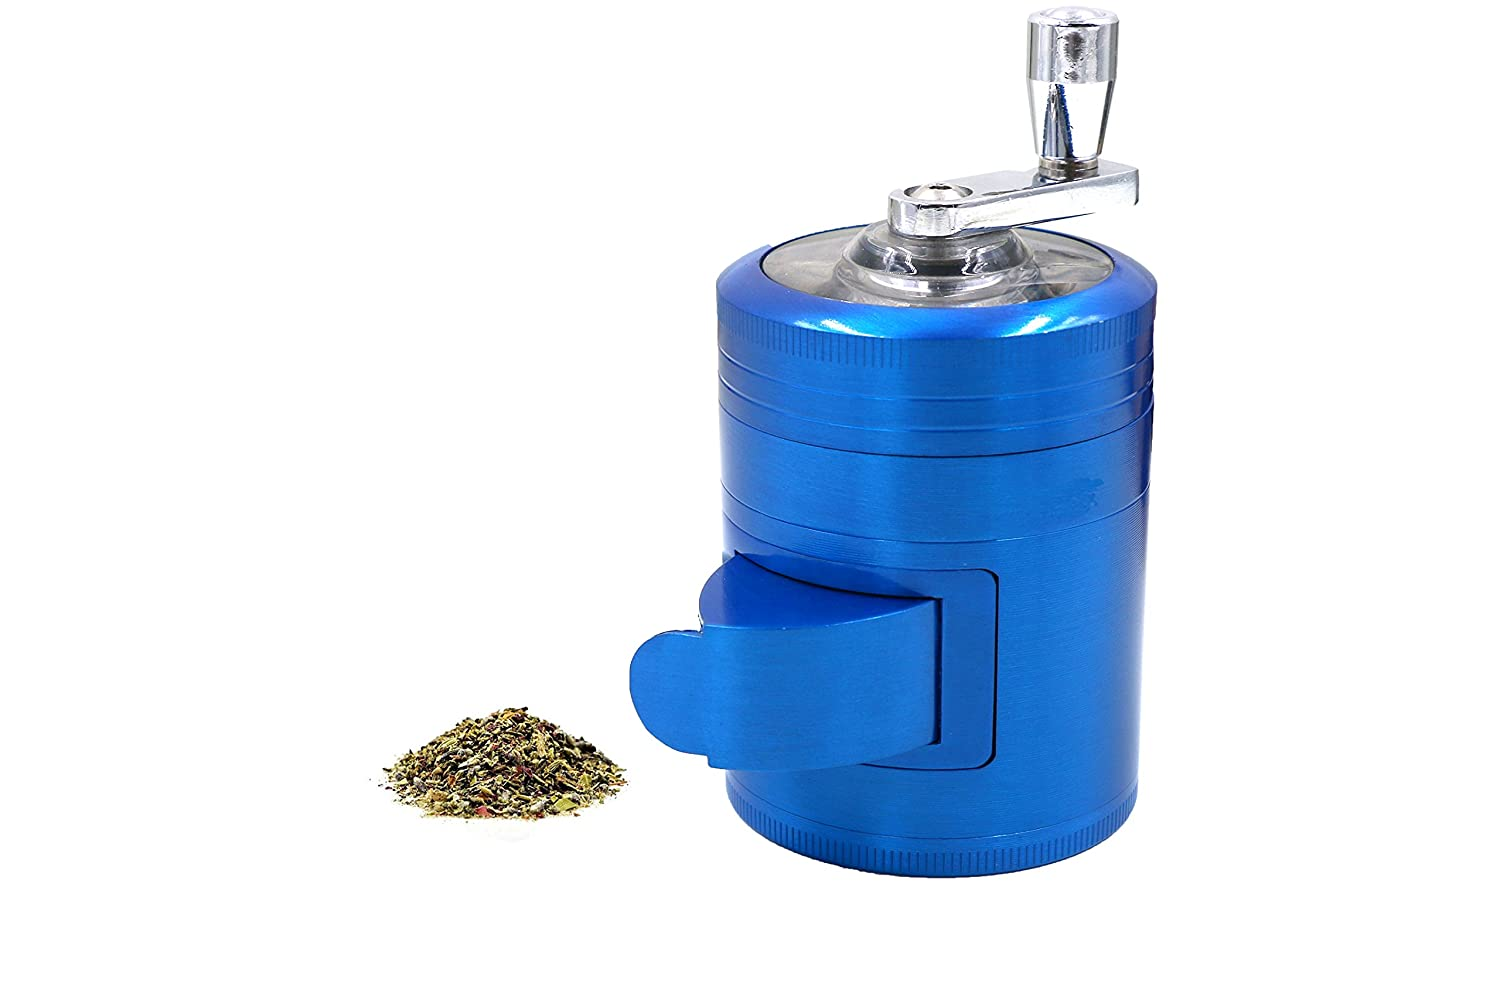 AIMAKE New Design Herb Weed& Spice 4 Piece Large 2 Inches Mills Grinder with Mill Handle & Pollen Catcher(Black) COMINHKPR138347